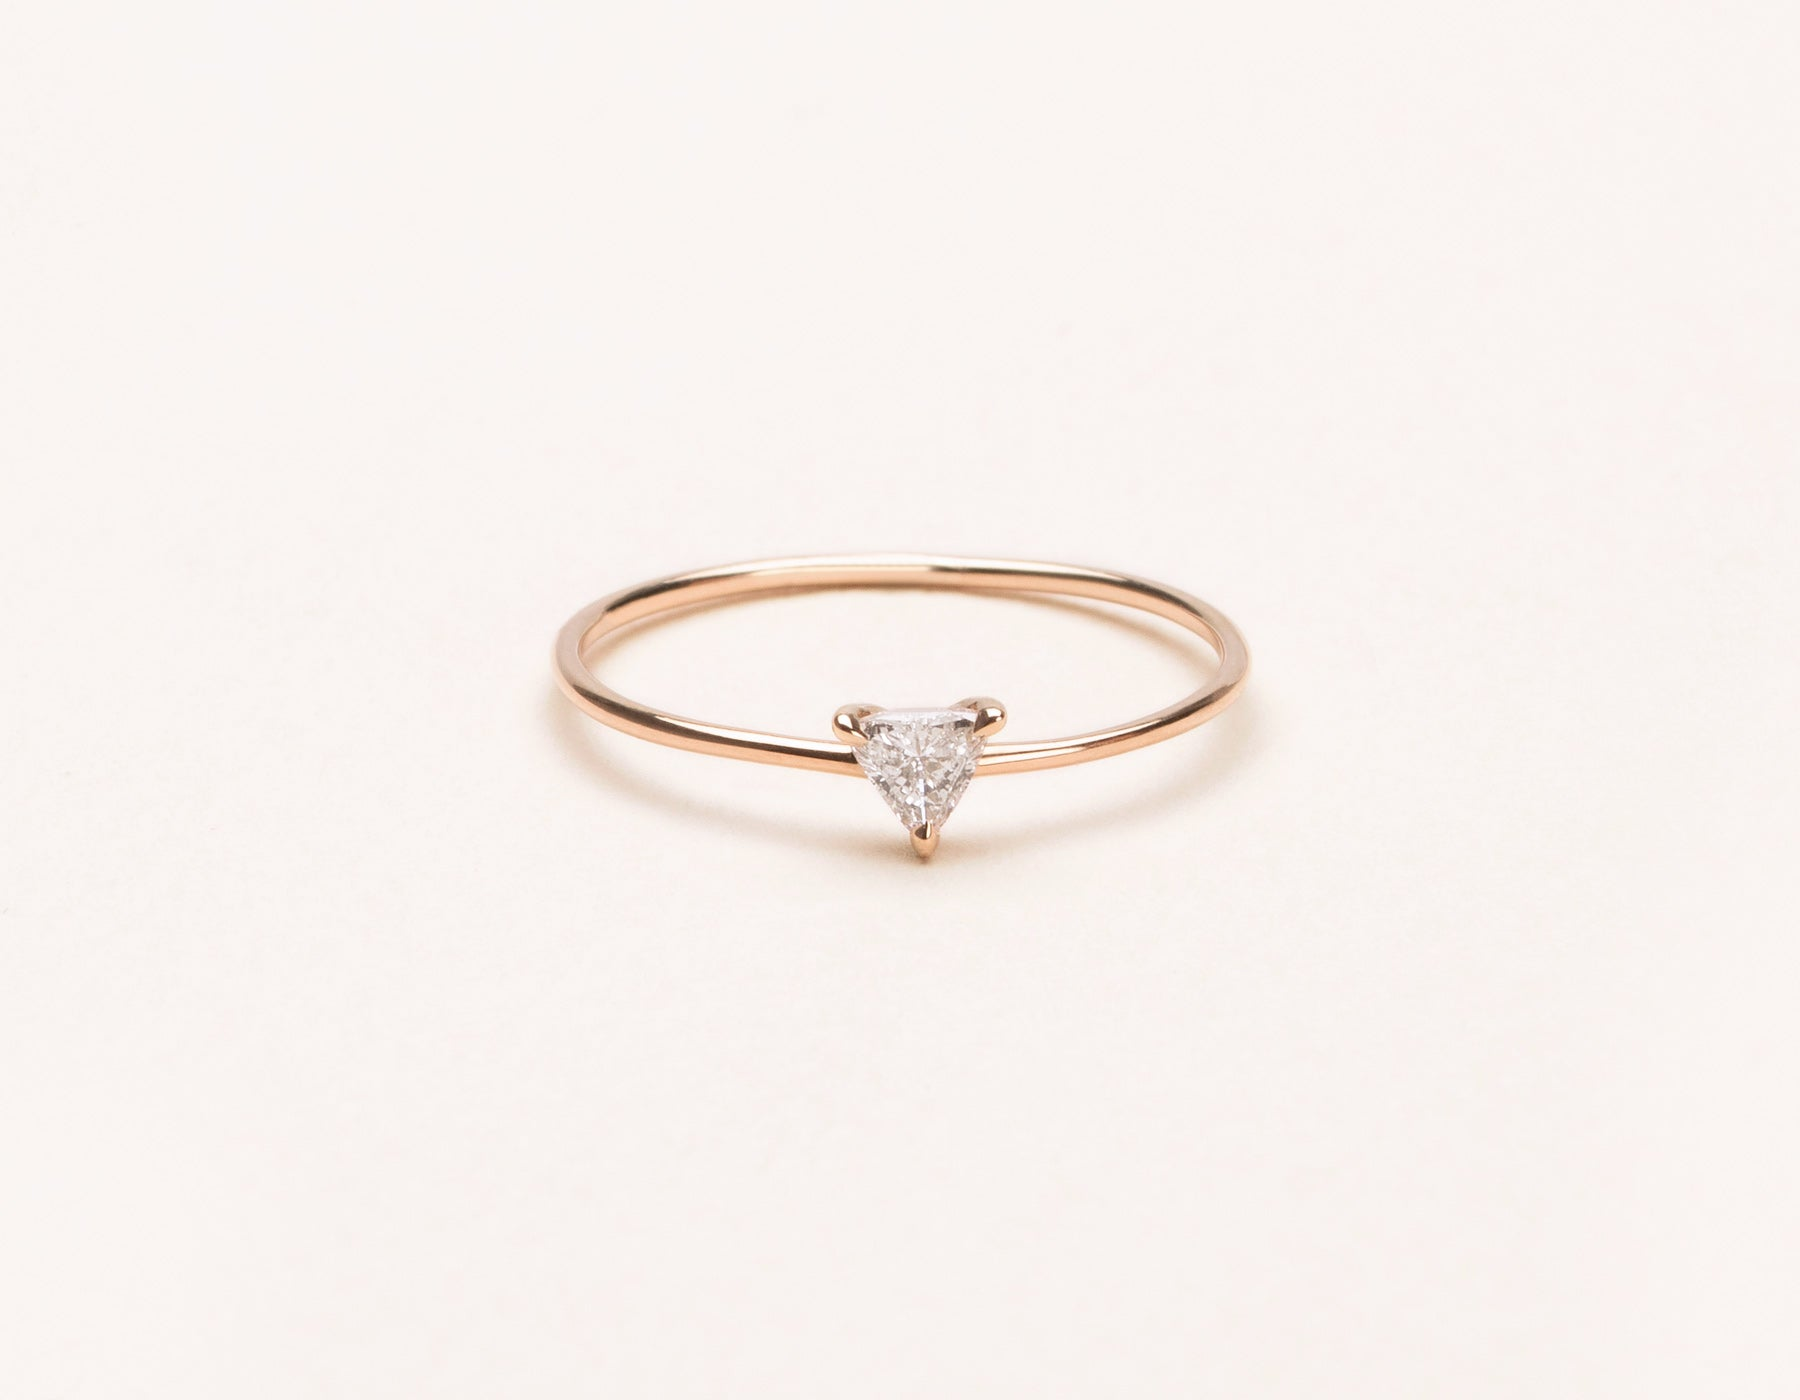 d number rings morganite diamond twist gold h webstore rose ring samuel product treated